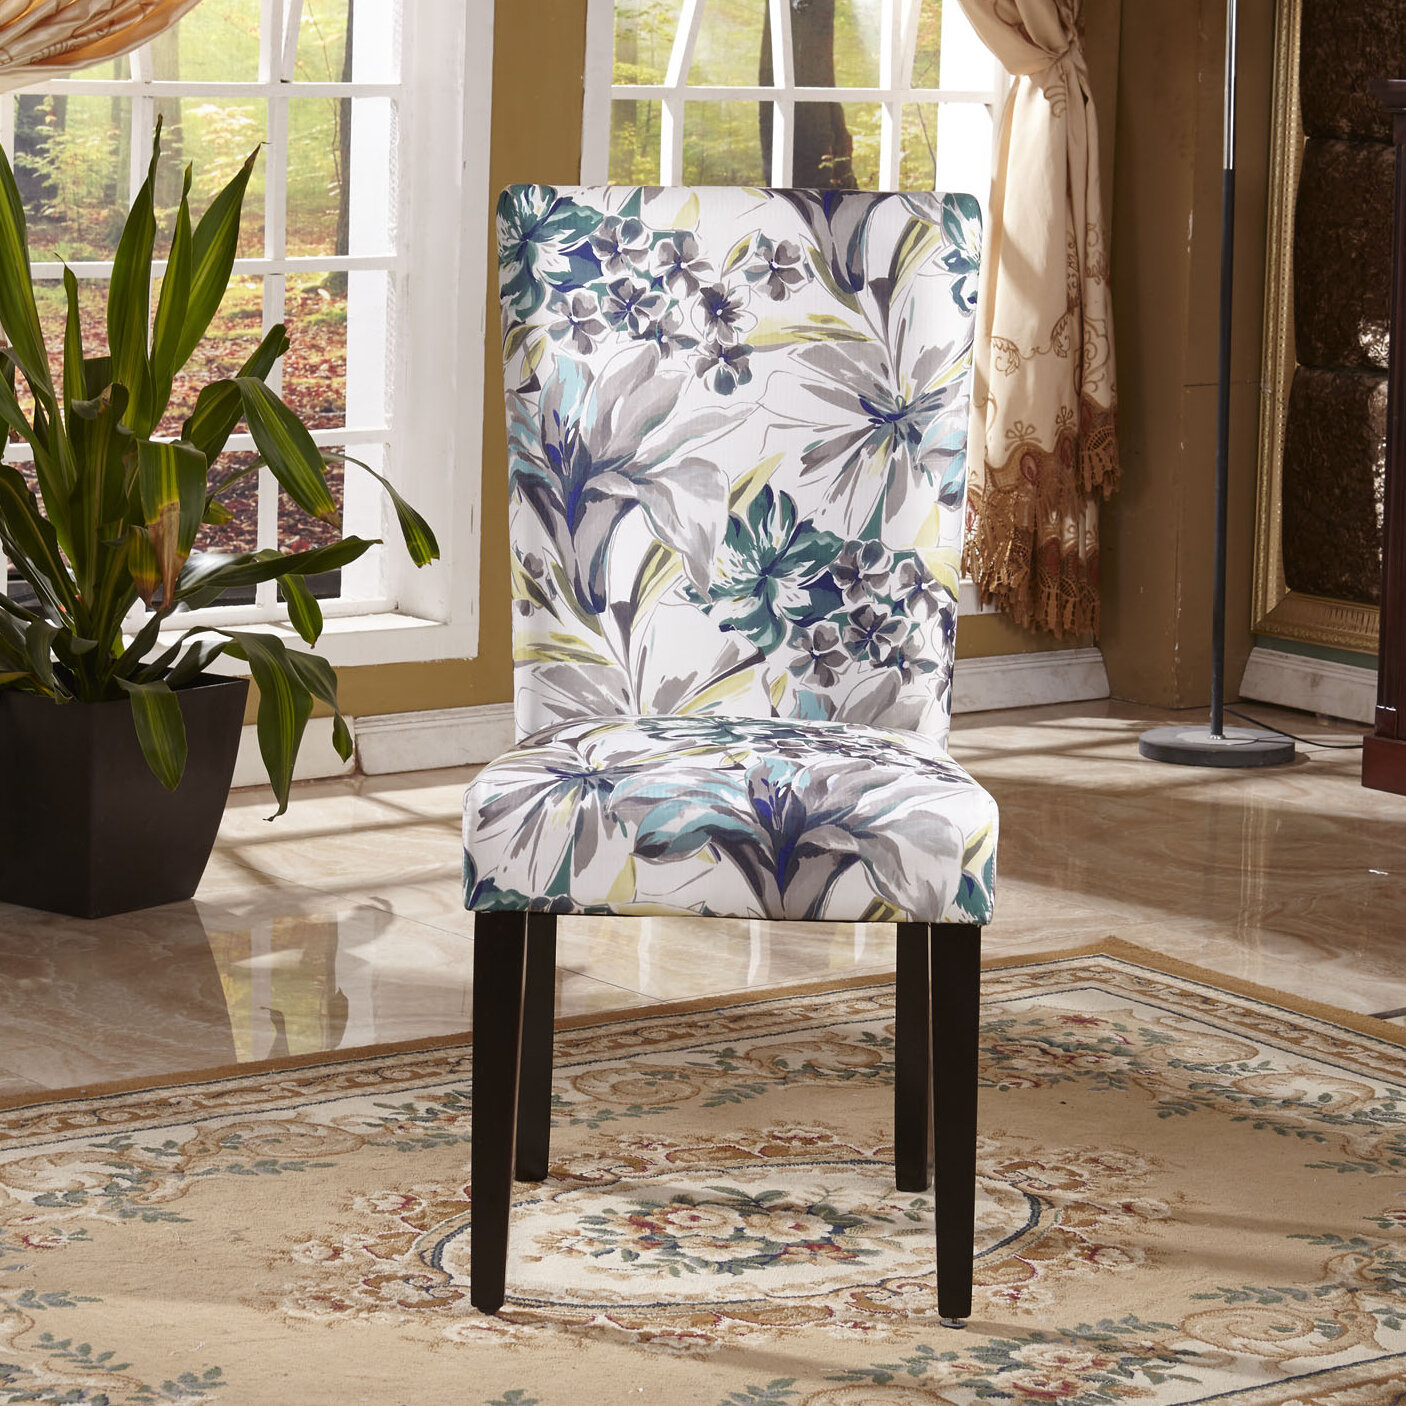 Etonnant Bellasario Collection Elegant Floral Upholstered Dining Chair U0026 Reviews |  Wayfair